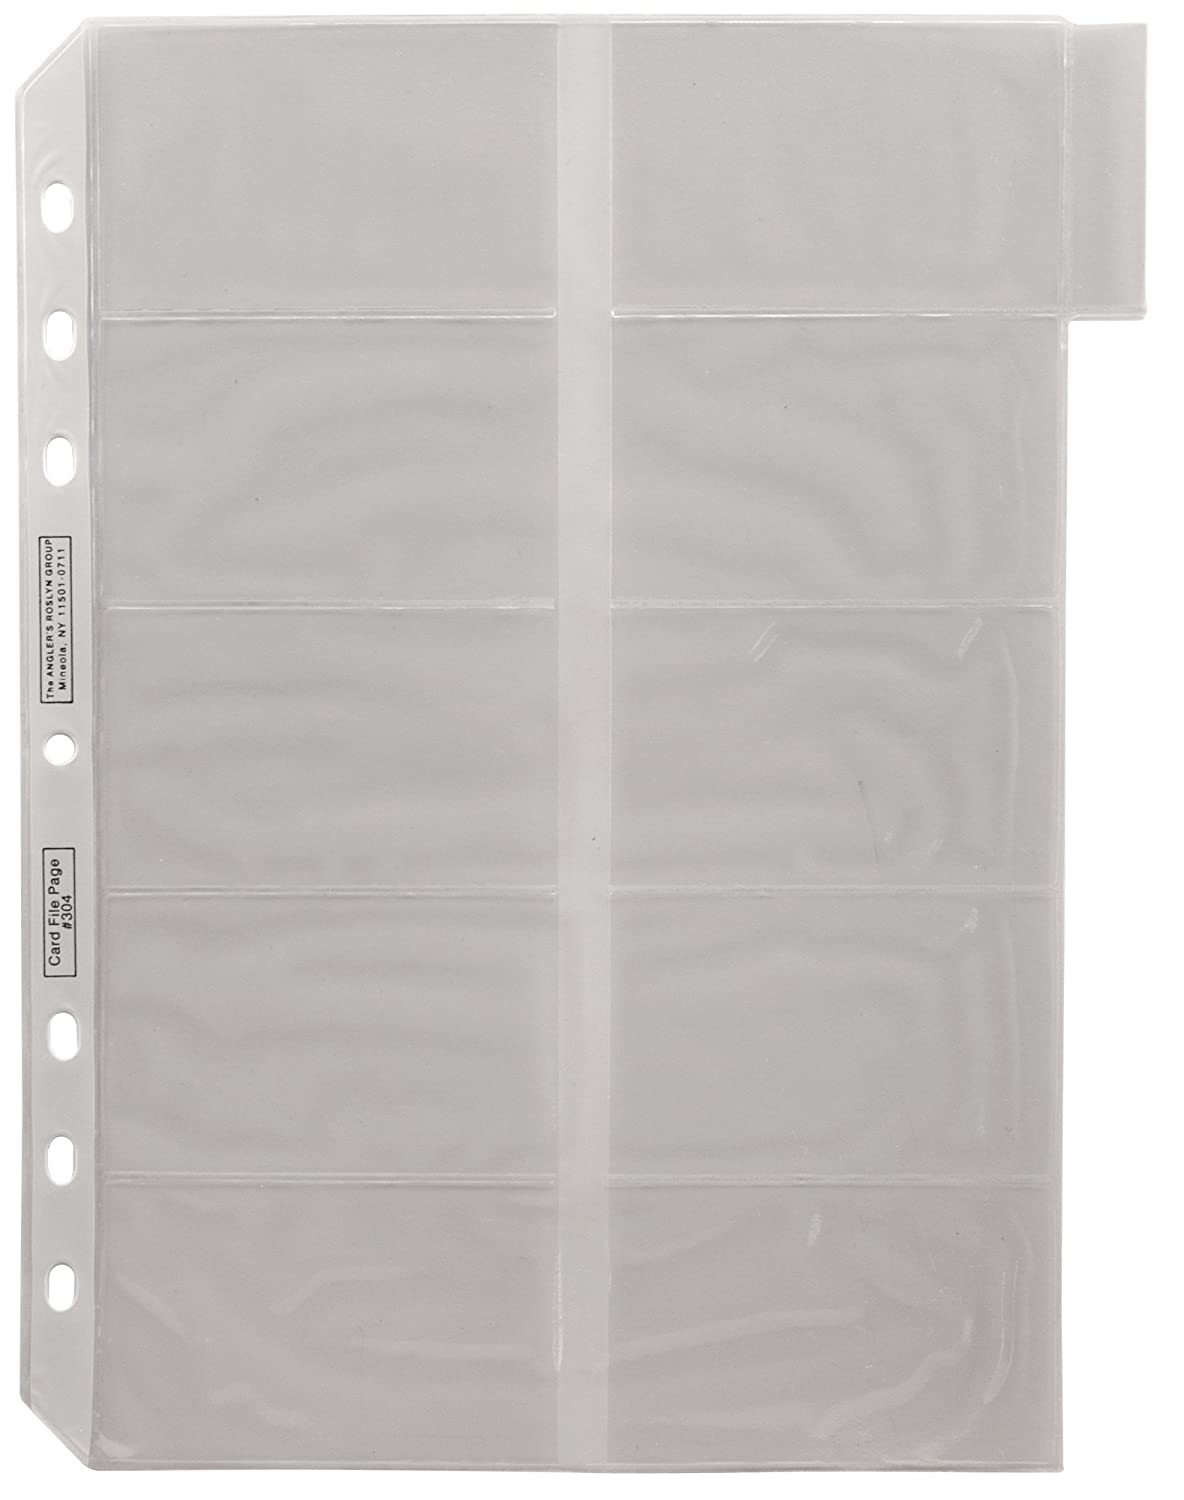 ADVANTUS Business Card Binder Tabbed Refill Pages, Frosted, See-Through, 5/Pack (ANG304)